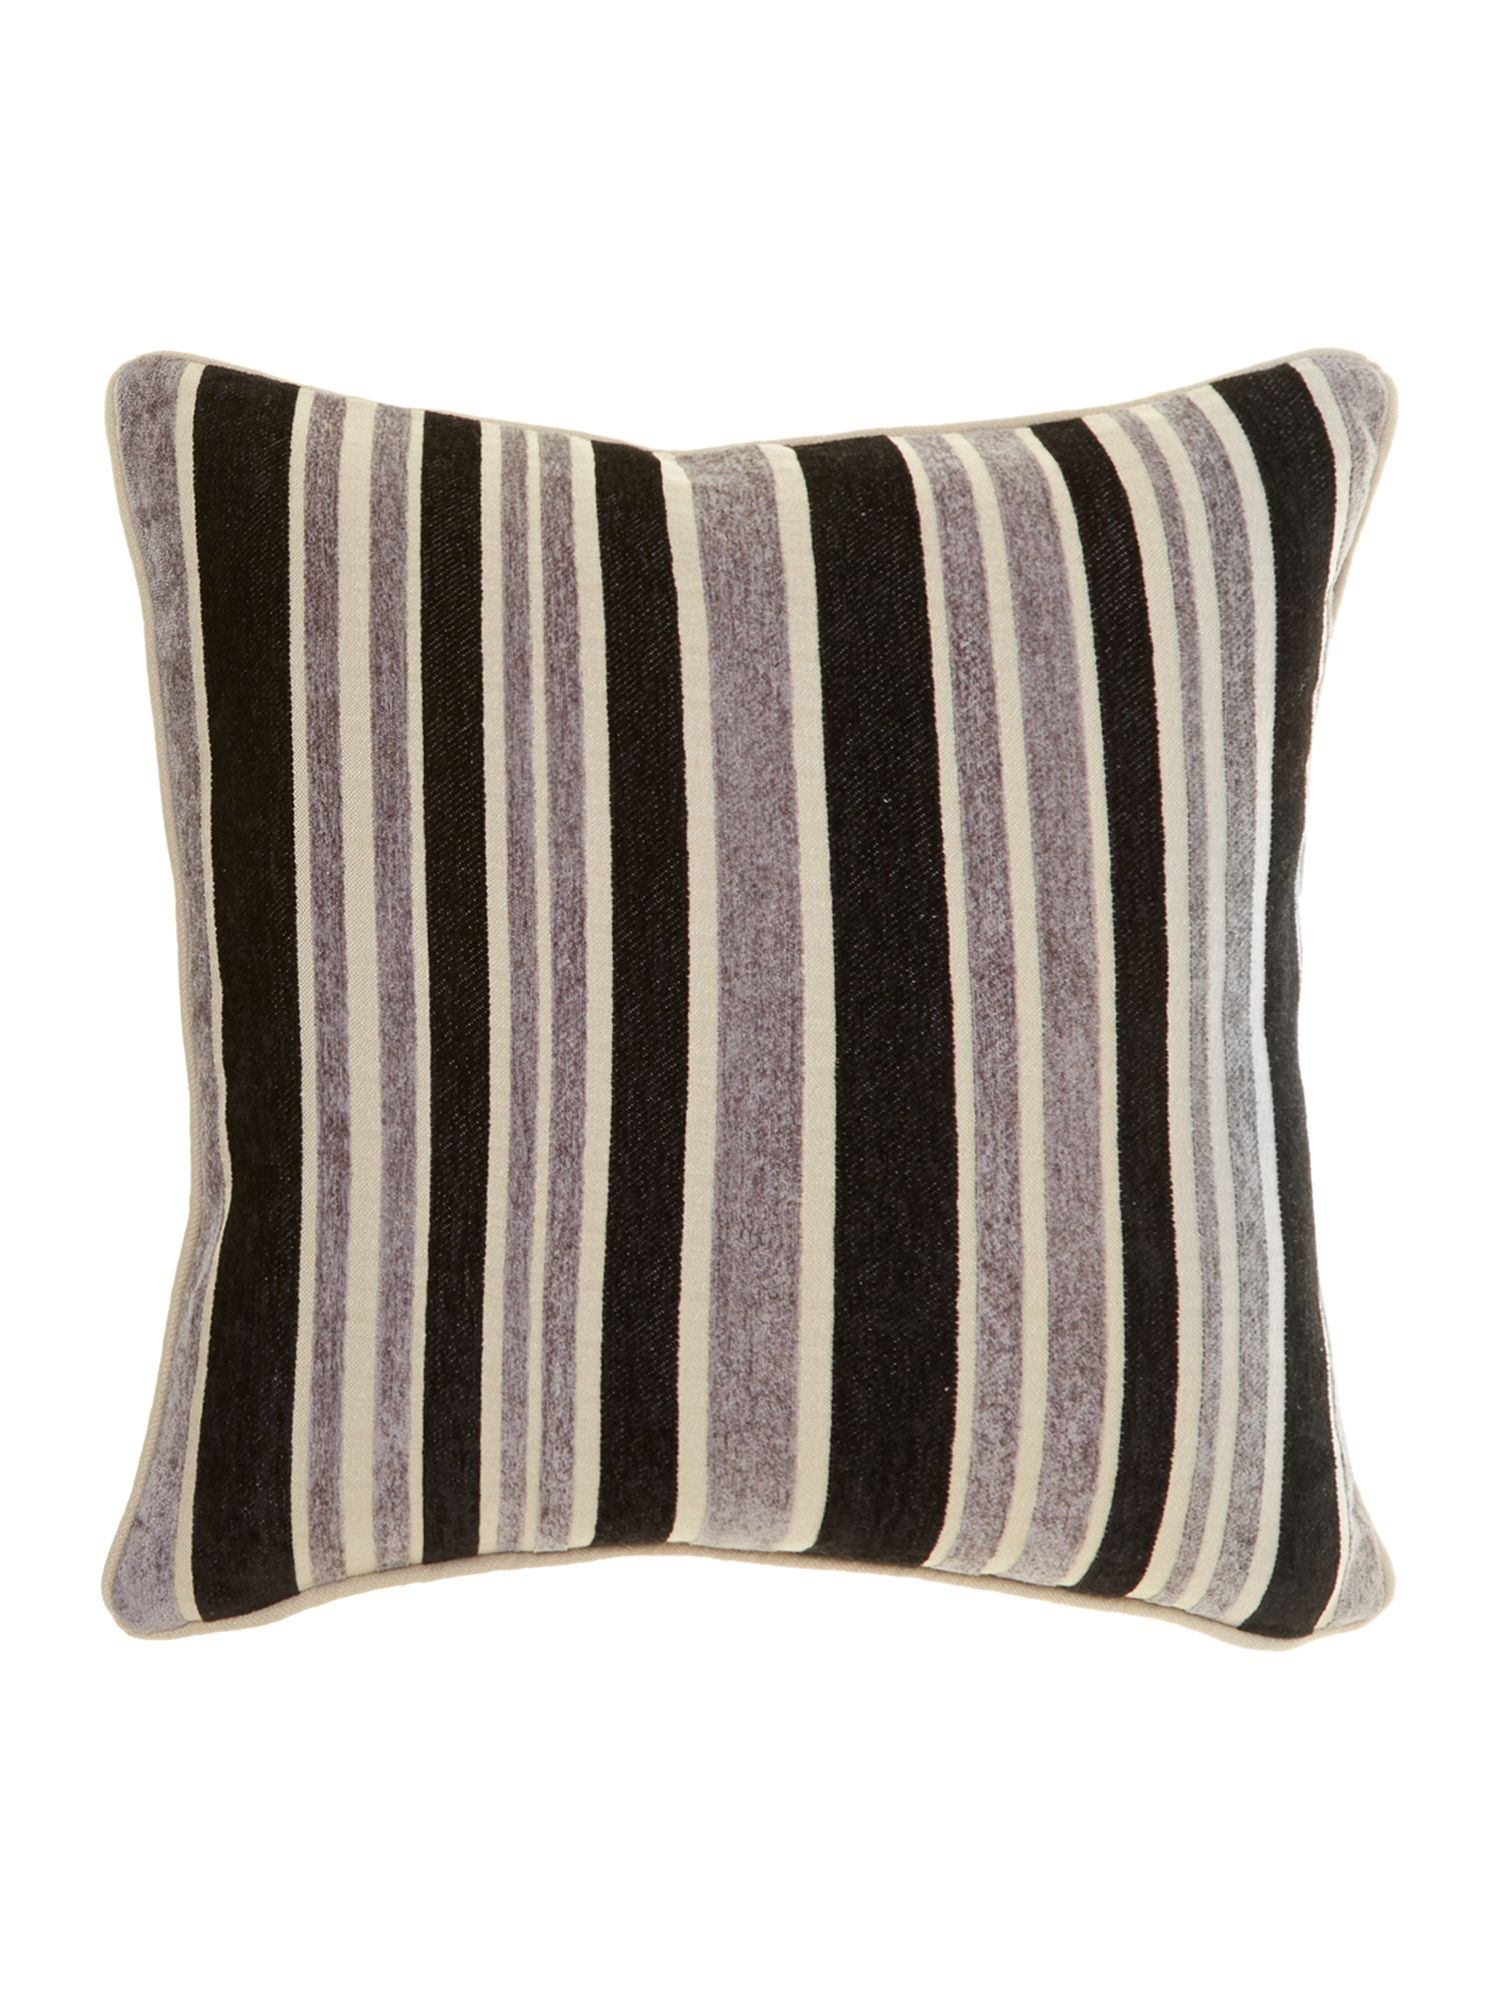 Stripe chenille cushion, Black